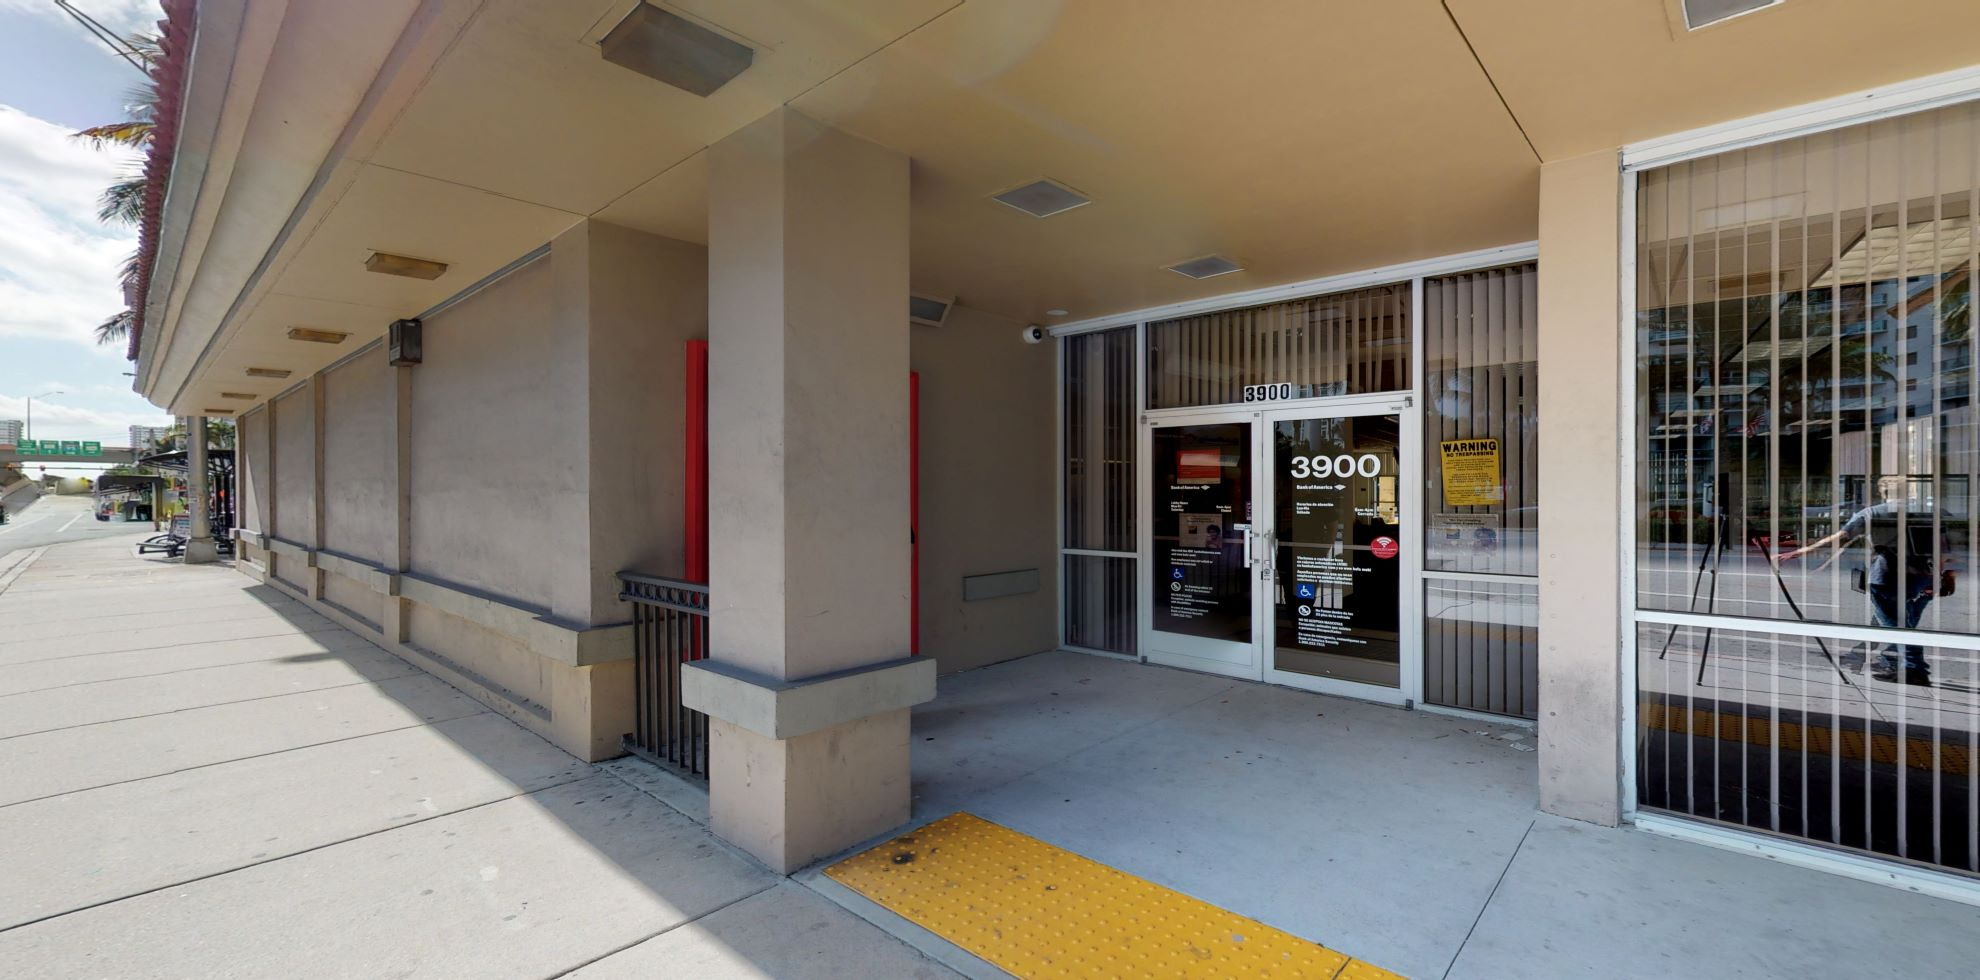 Bank of America financial center with walk-up ATM   3900 S Ocean Dr, Hollywood, FL 33019